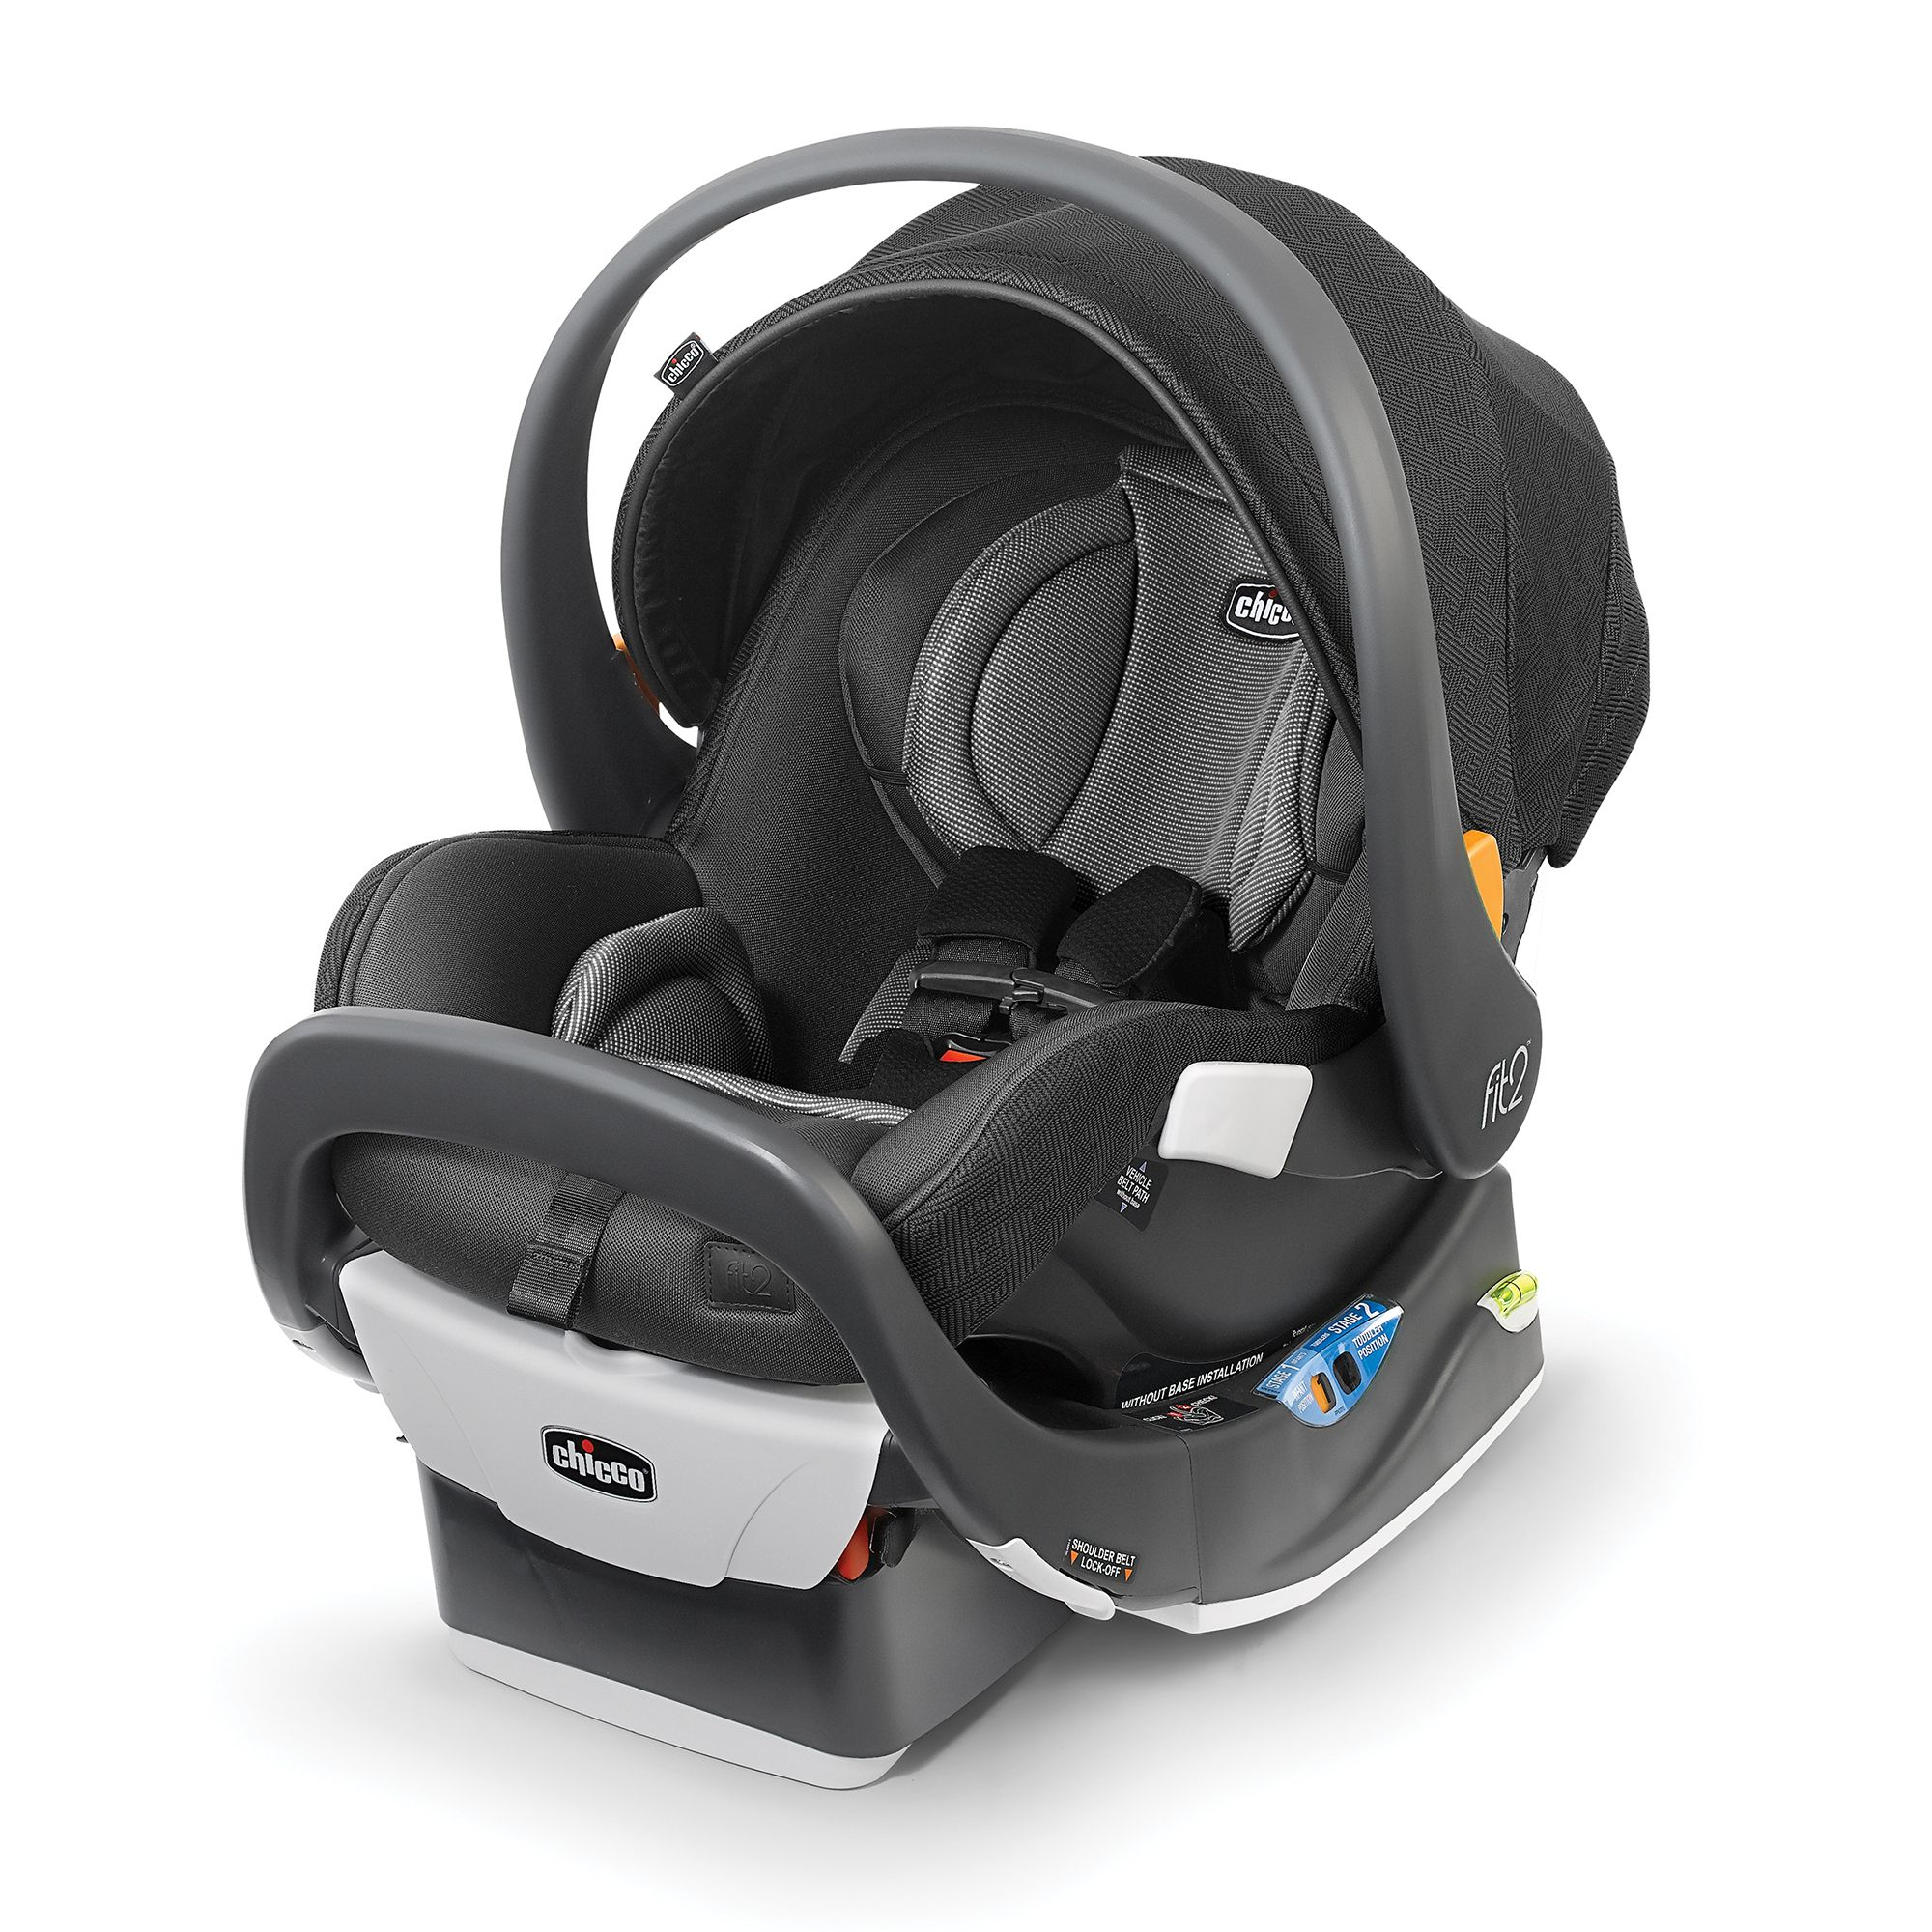 Chicco Fit2 2 Year Rear Facing Infant & Toddler Car Seat in